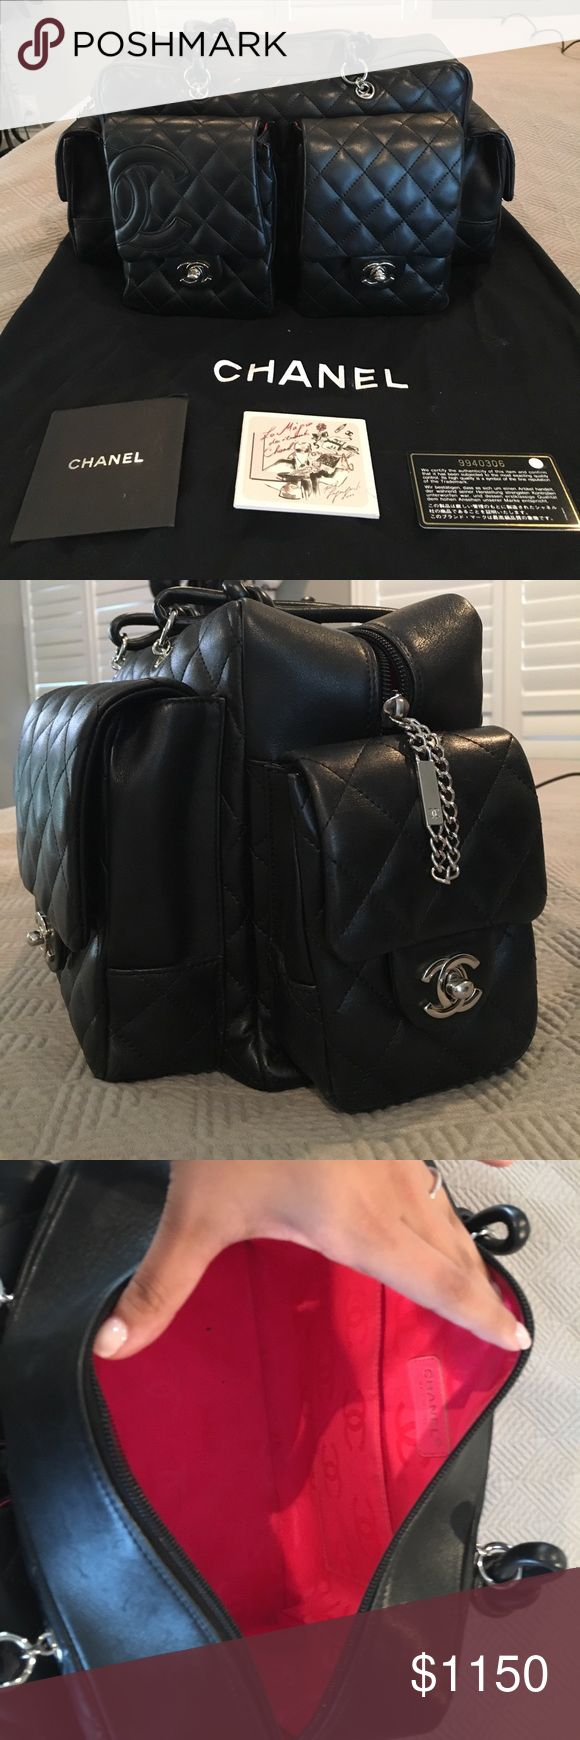 Authentic Chanel Cambon Reporter Bag Authentic Chanel Cambon Reporter Bag in great condition. Minimal wear! Comes with authenticity cards and dust bag! CHANEL Bags Shoulder Bags